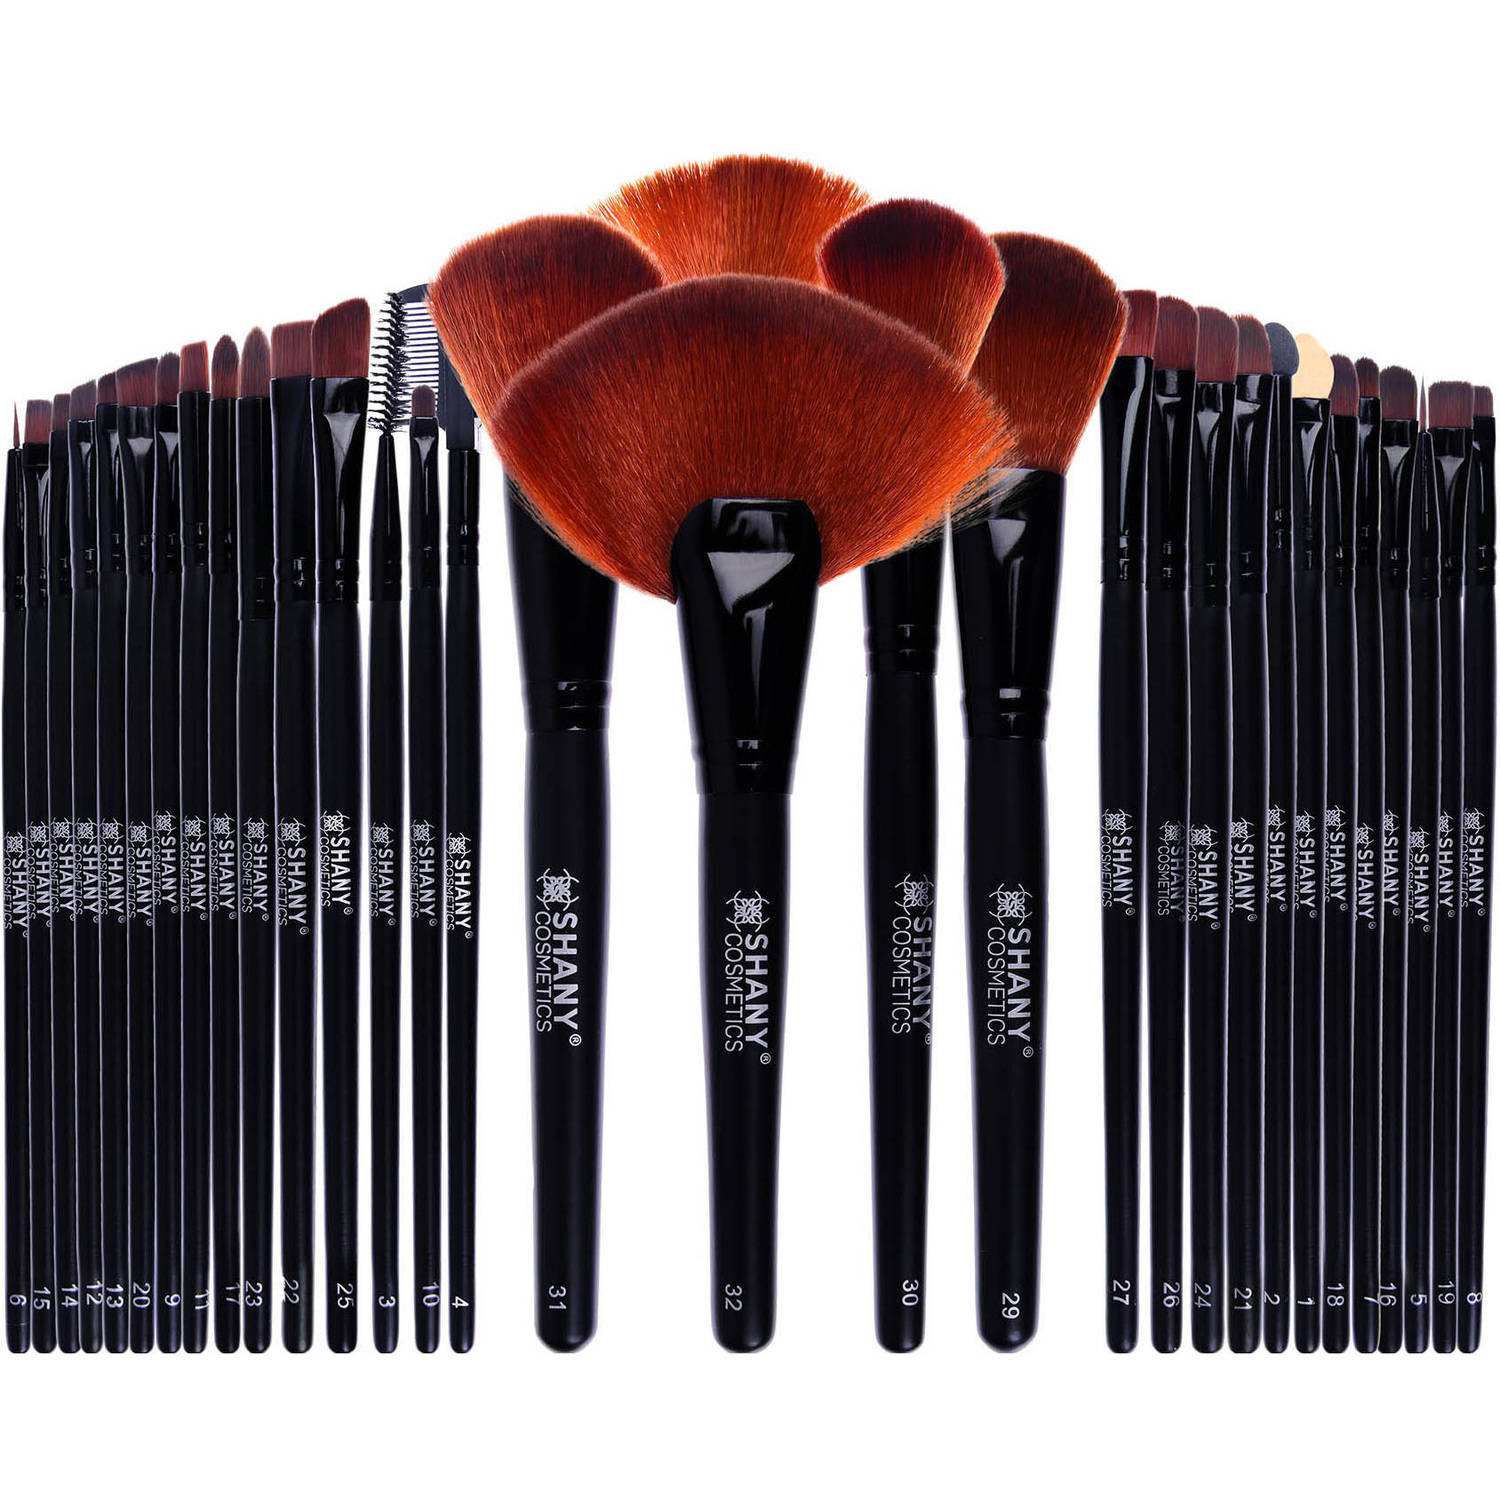 SHANY Professional Makeup Brush Comprehensive Set with Leather-Look Pouch (32 Count)